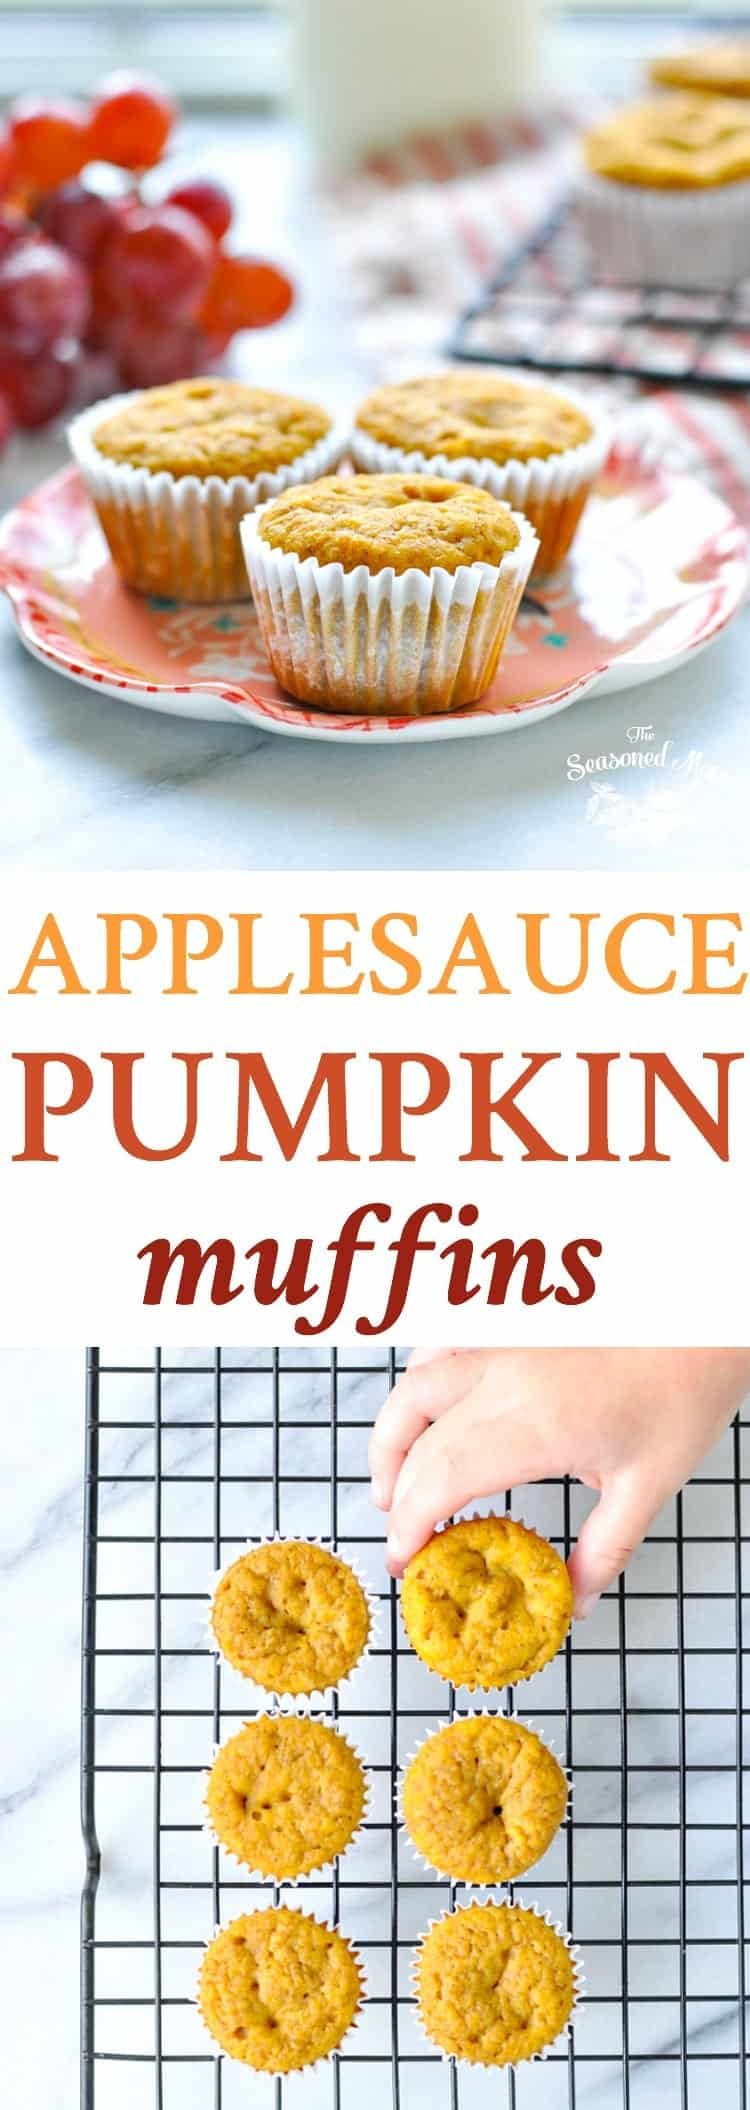 The Applesauce Pumpkin Muffins are a healthy breakfast or snack for fall! Muffin Recipes | Snack Ideas | Lunch Ideas for Kids | Clean Eating Recipes